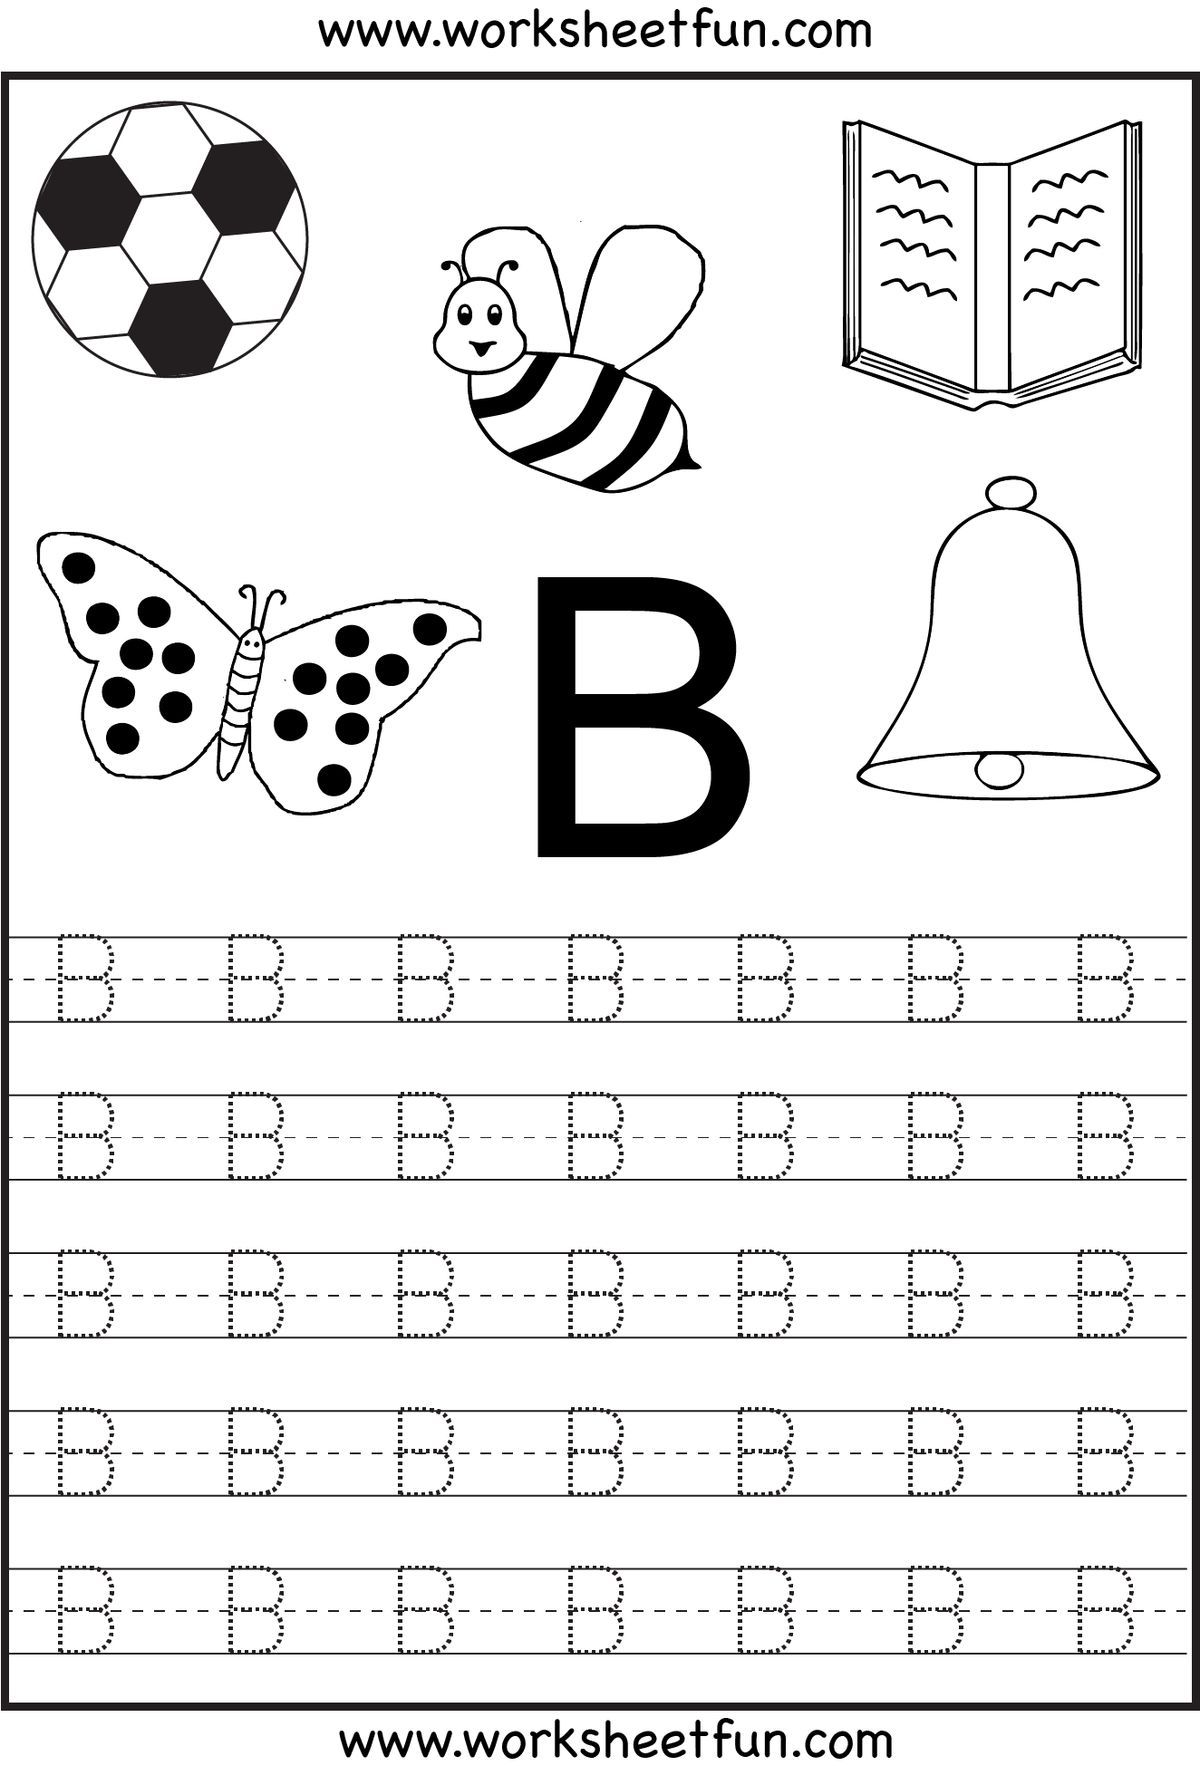 Free Printable Worksheets: January 2009 | TRACING | Pinterest